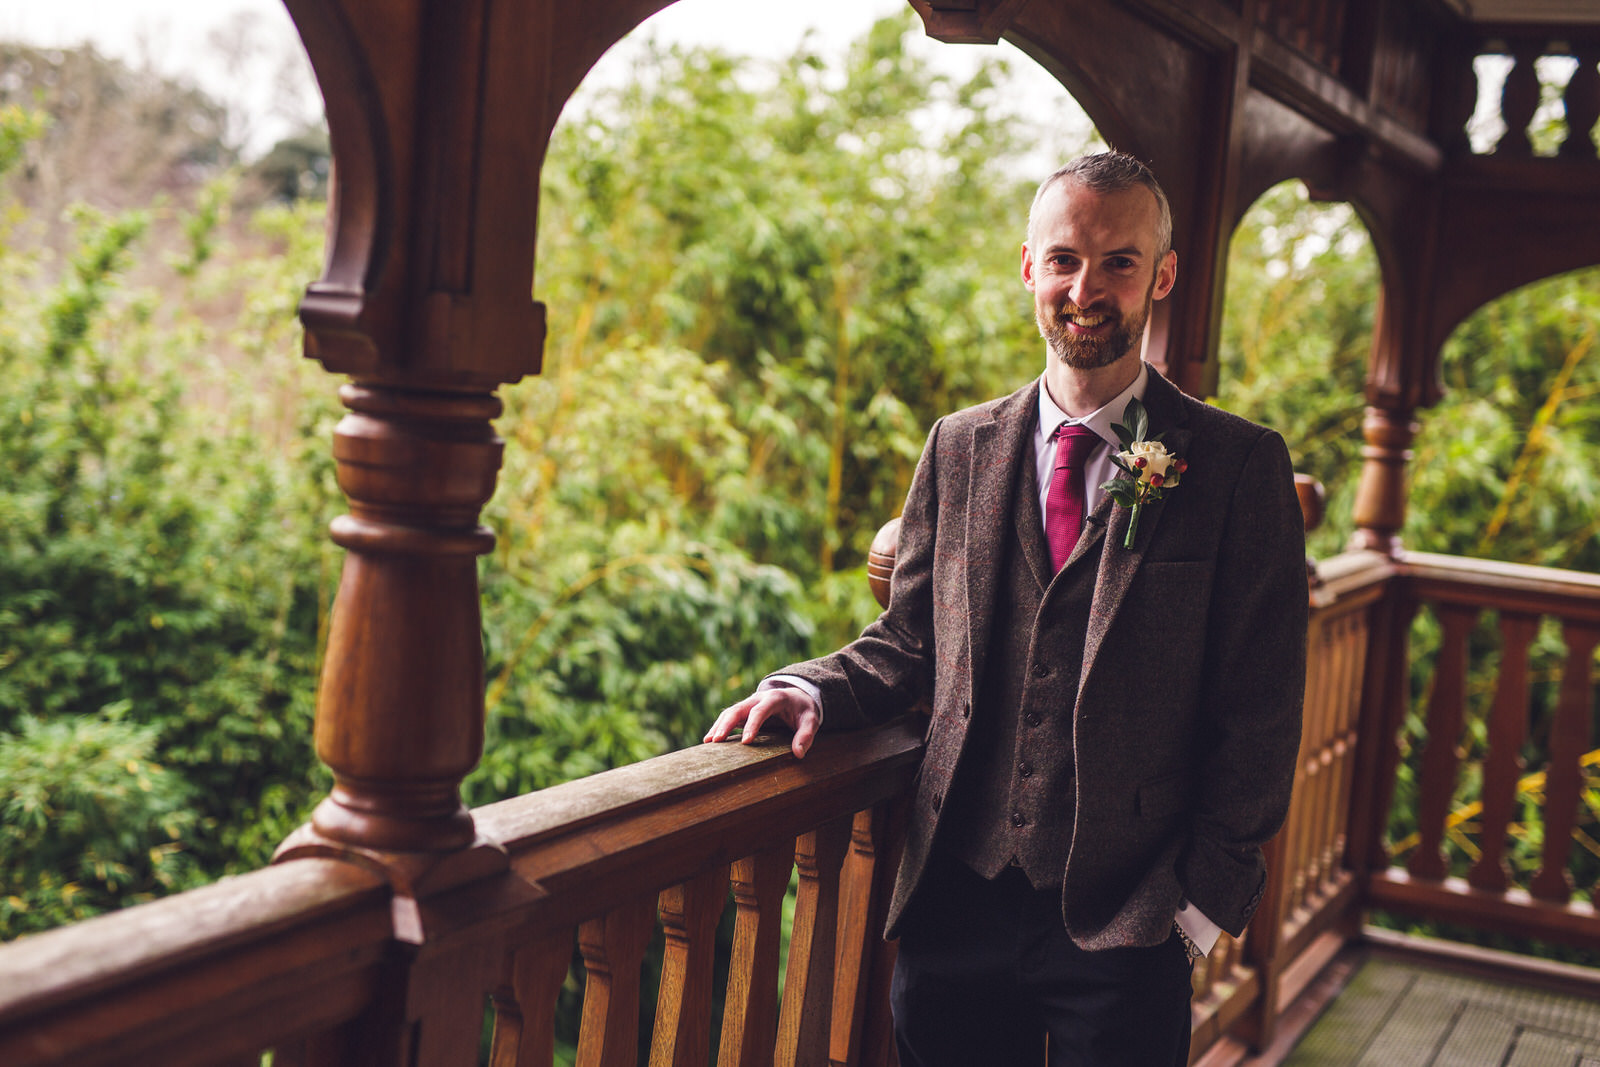 Roger_kenny-wedding-photographer-wicklow-dublin-zoo_015.jpg